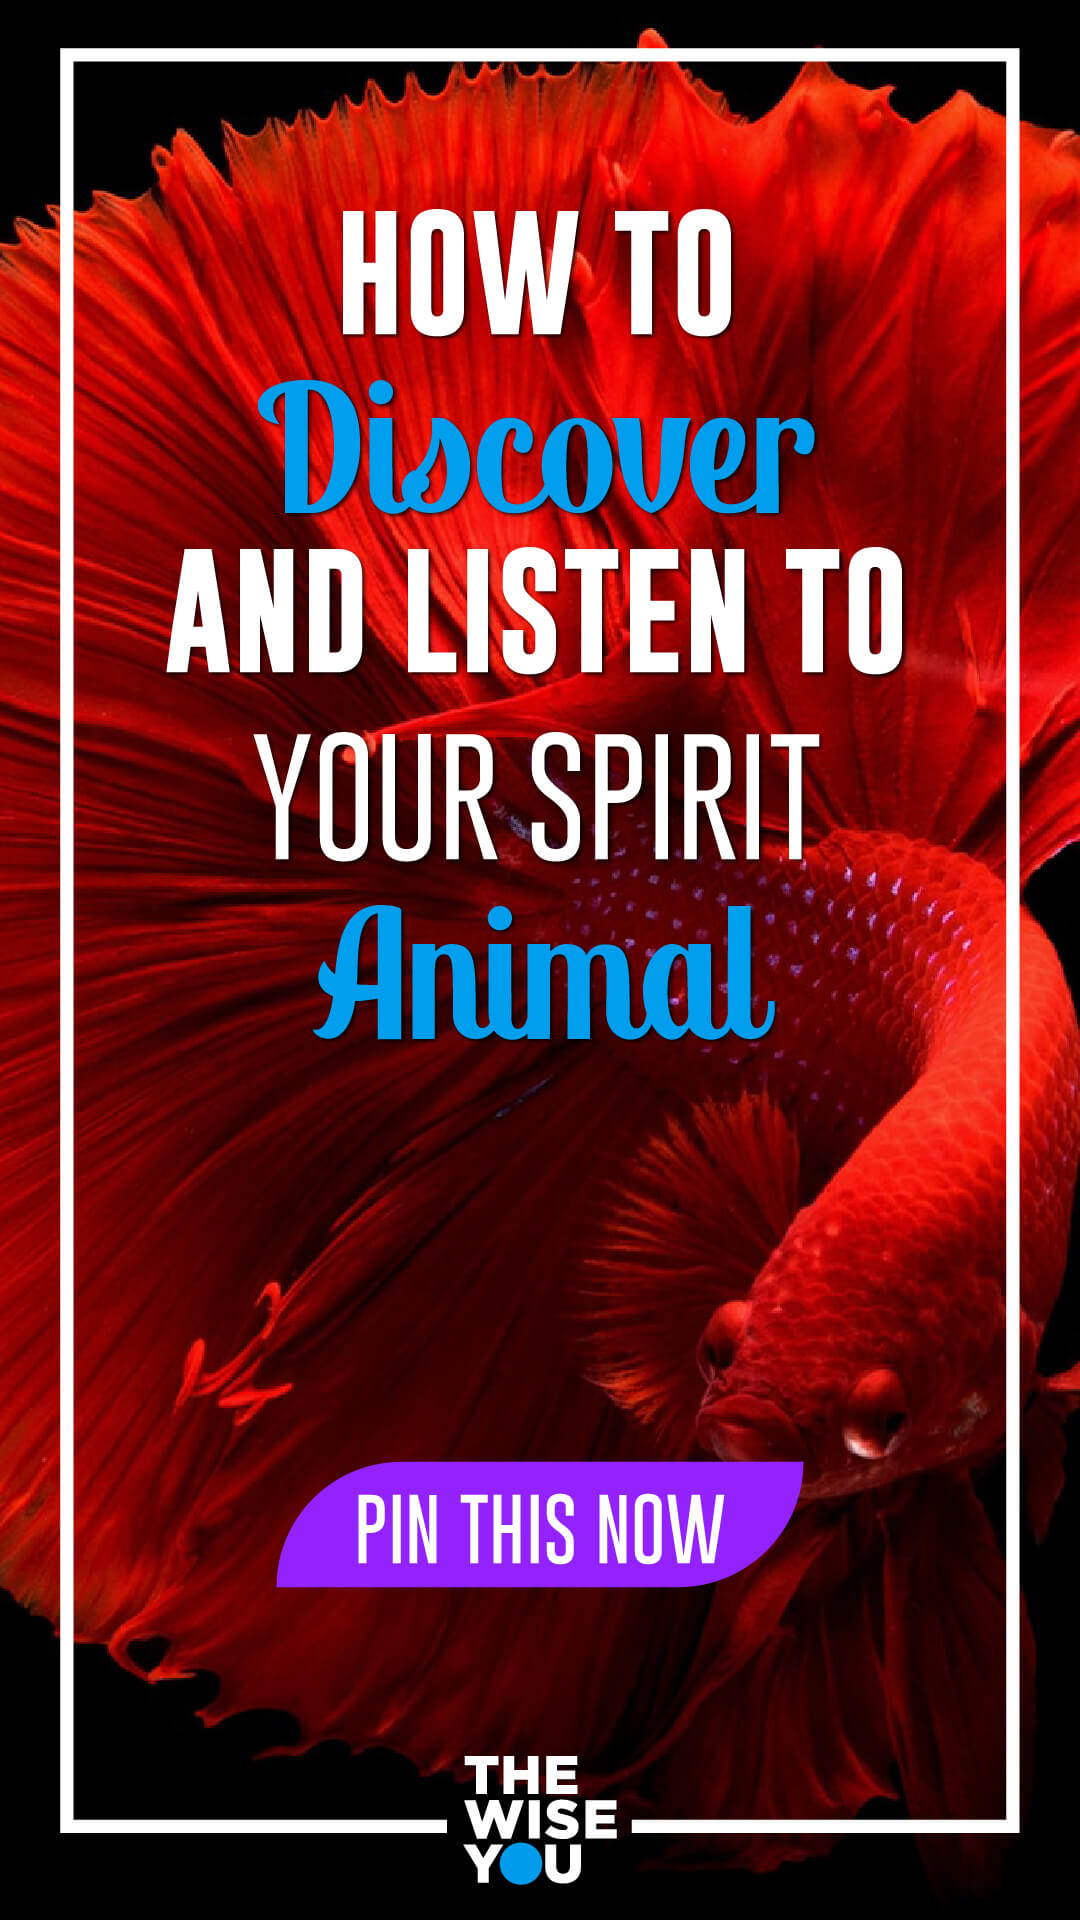 How to Discover and Listen to Your Spirit Animal